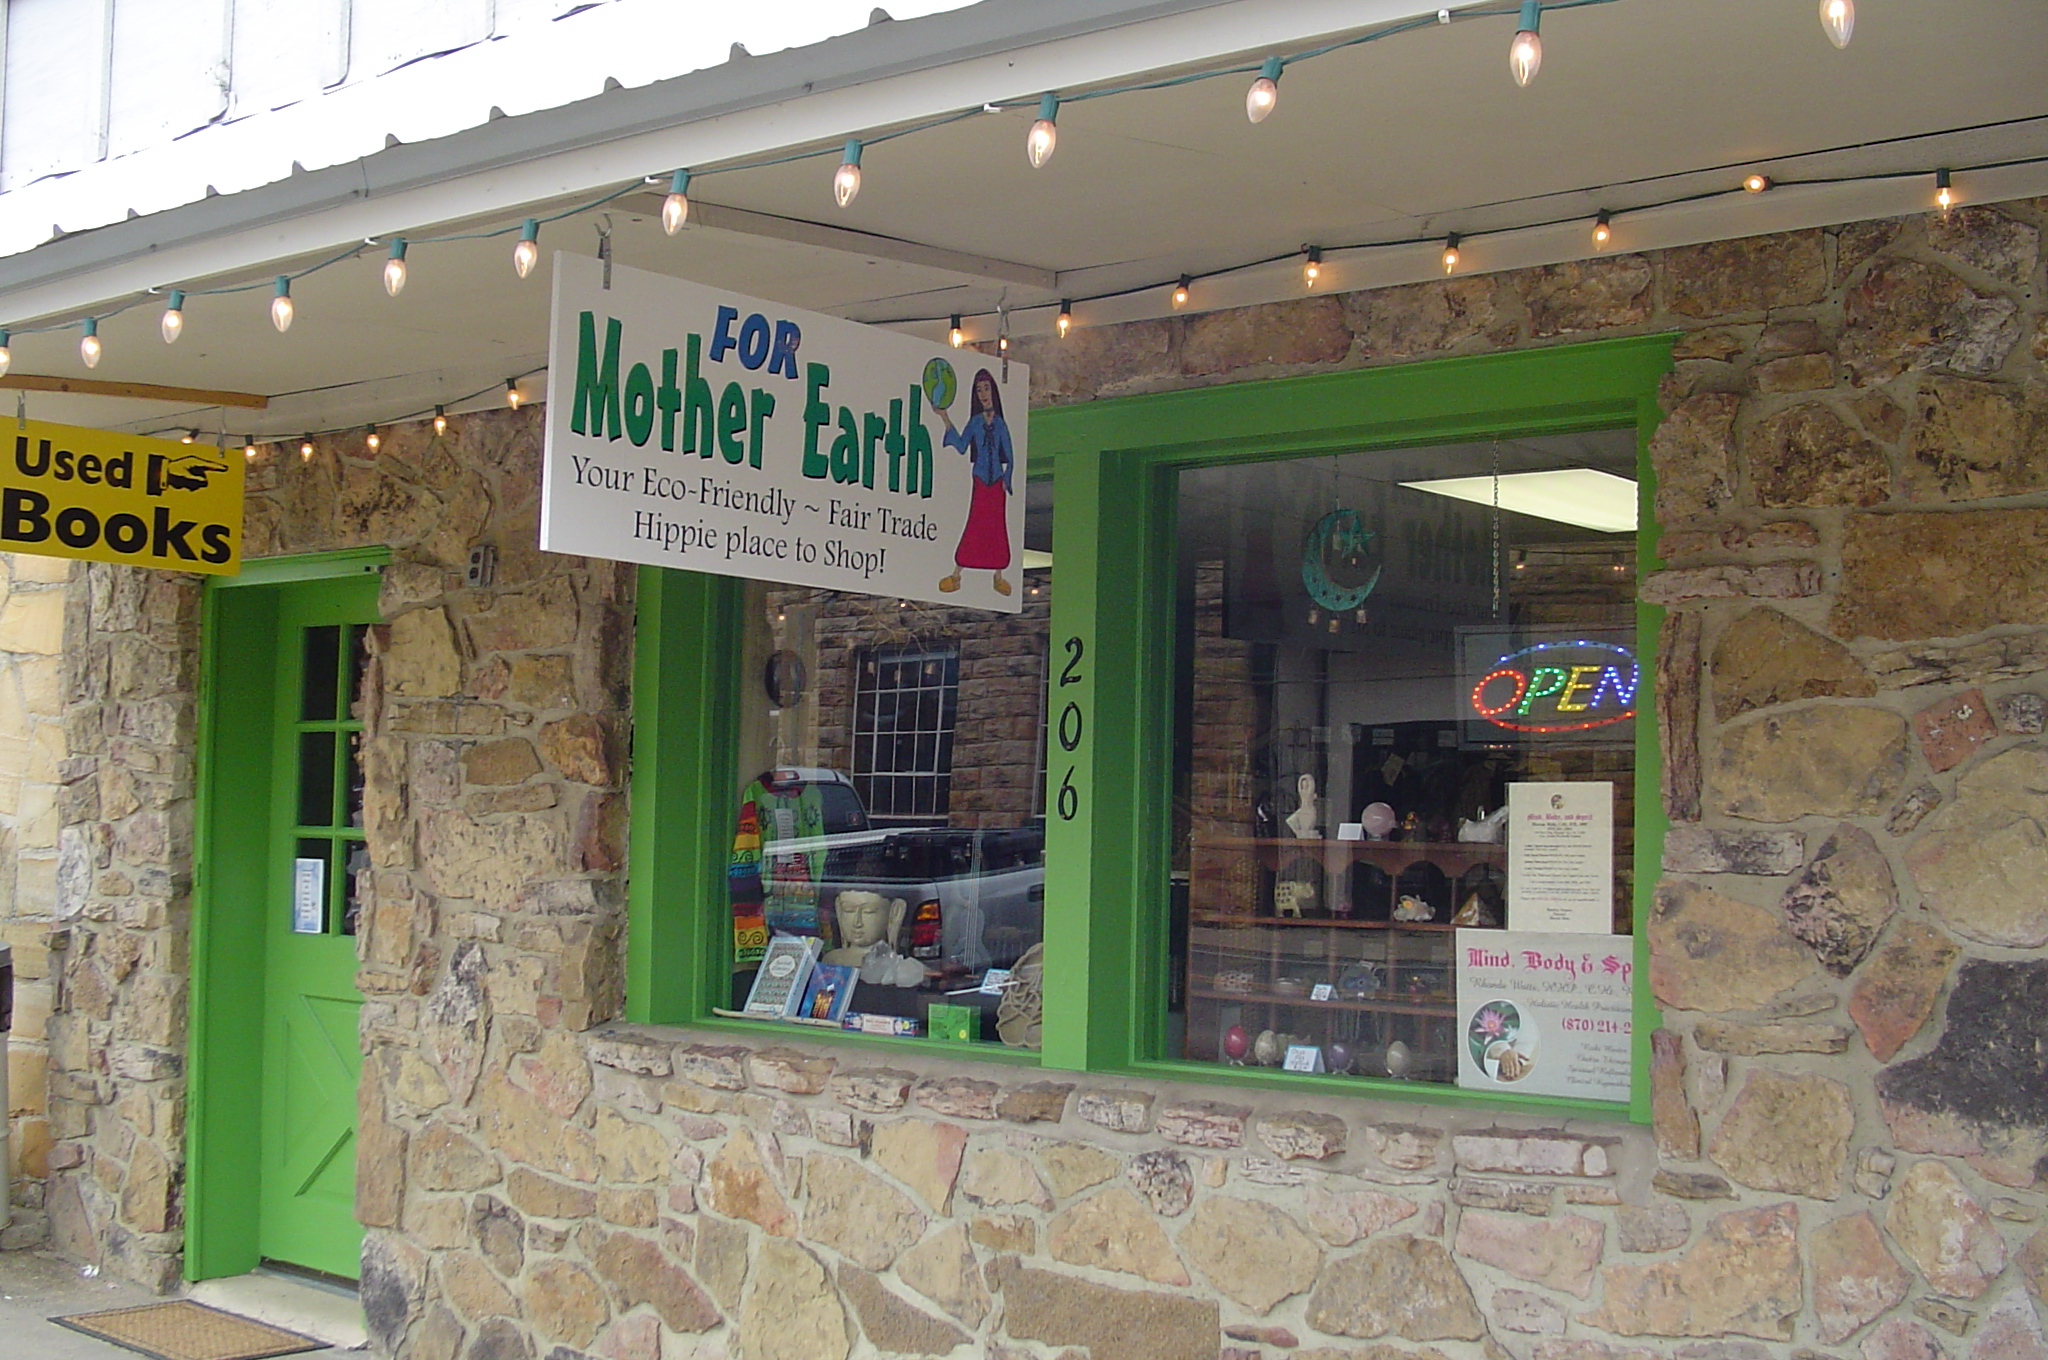 Your eco-friendly fair trade hippie place to shop located in beautiful Mt. View, Arkansas